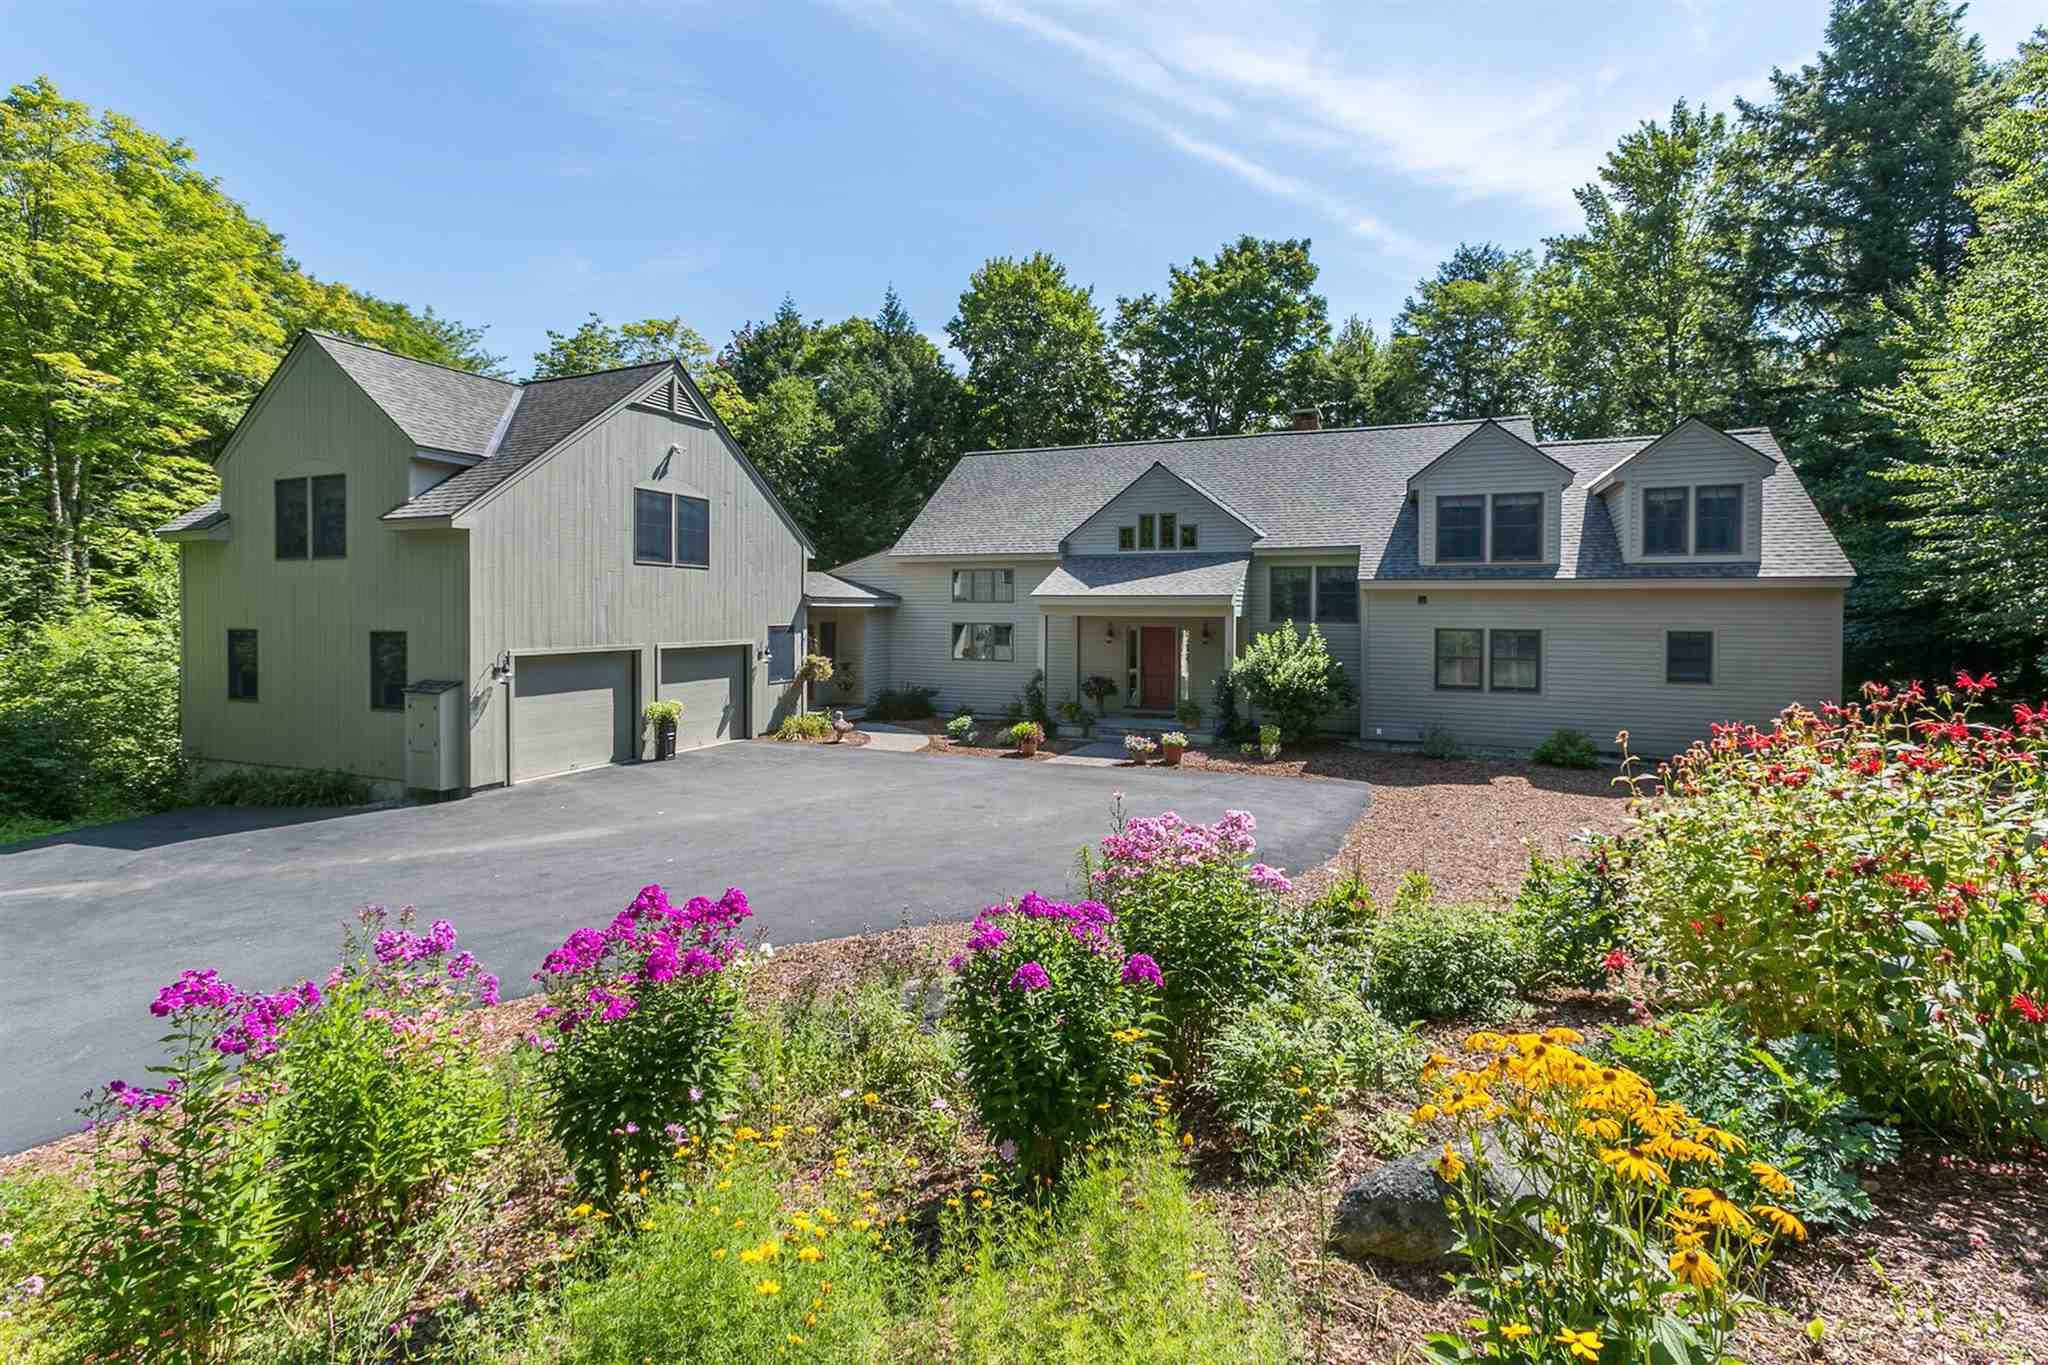 VILLAGE OF EASTMAN IN TOWN OF GRANTHAM NH Home for sale $$849,000 | $187 per sq.ft.